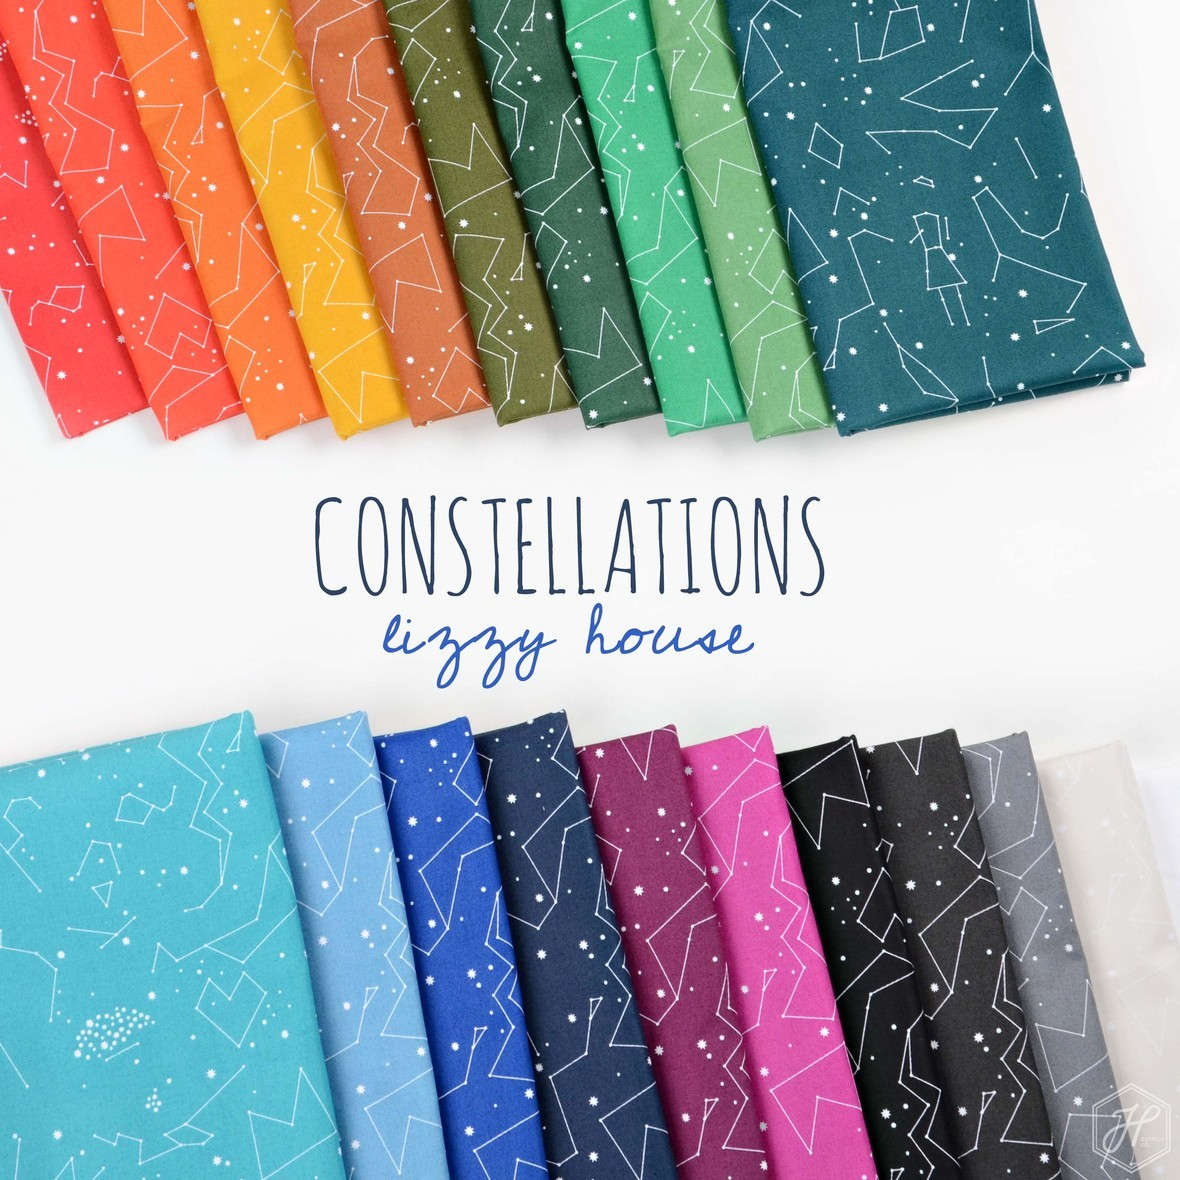 Constellations Fabric Poster Lizzy House at Hawthorne Supply Co